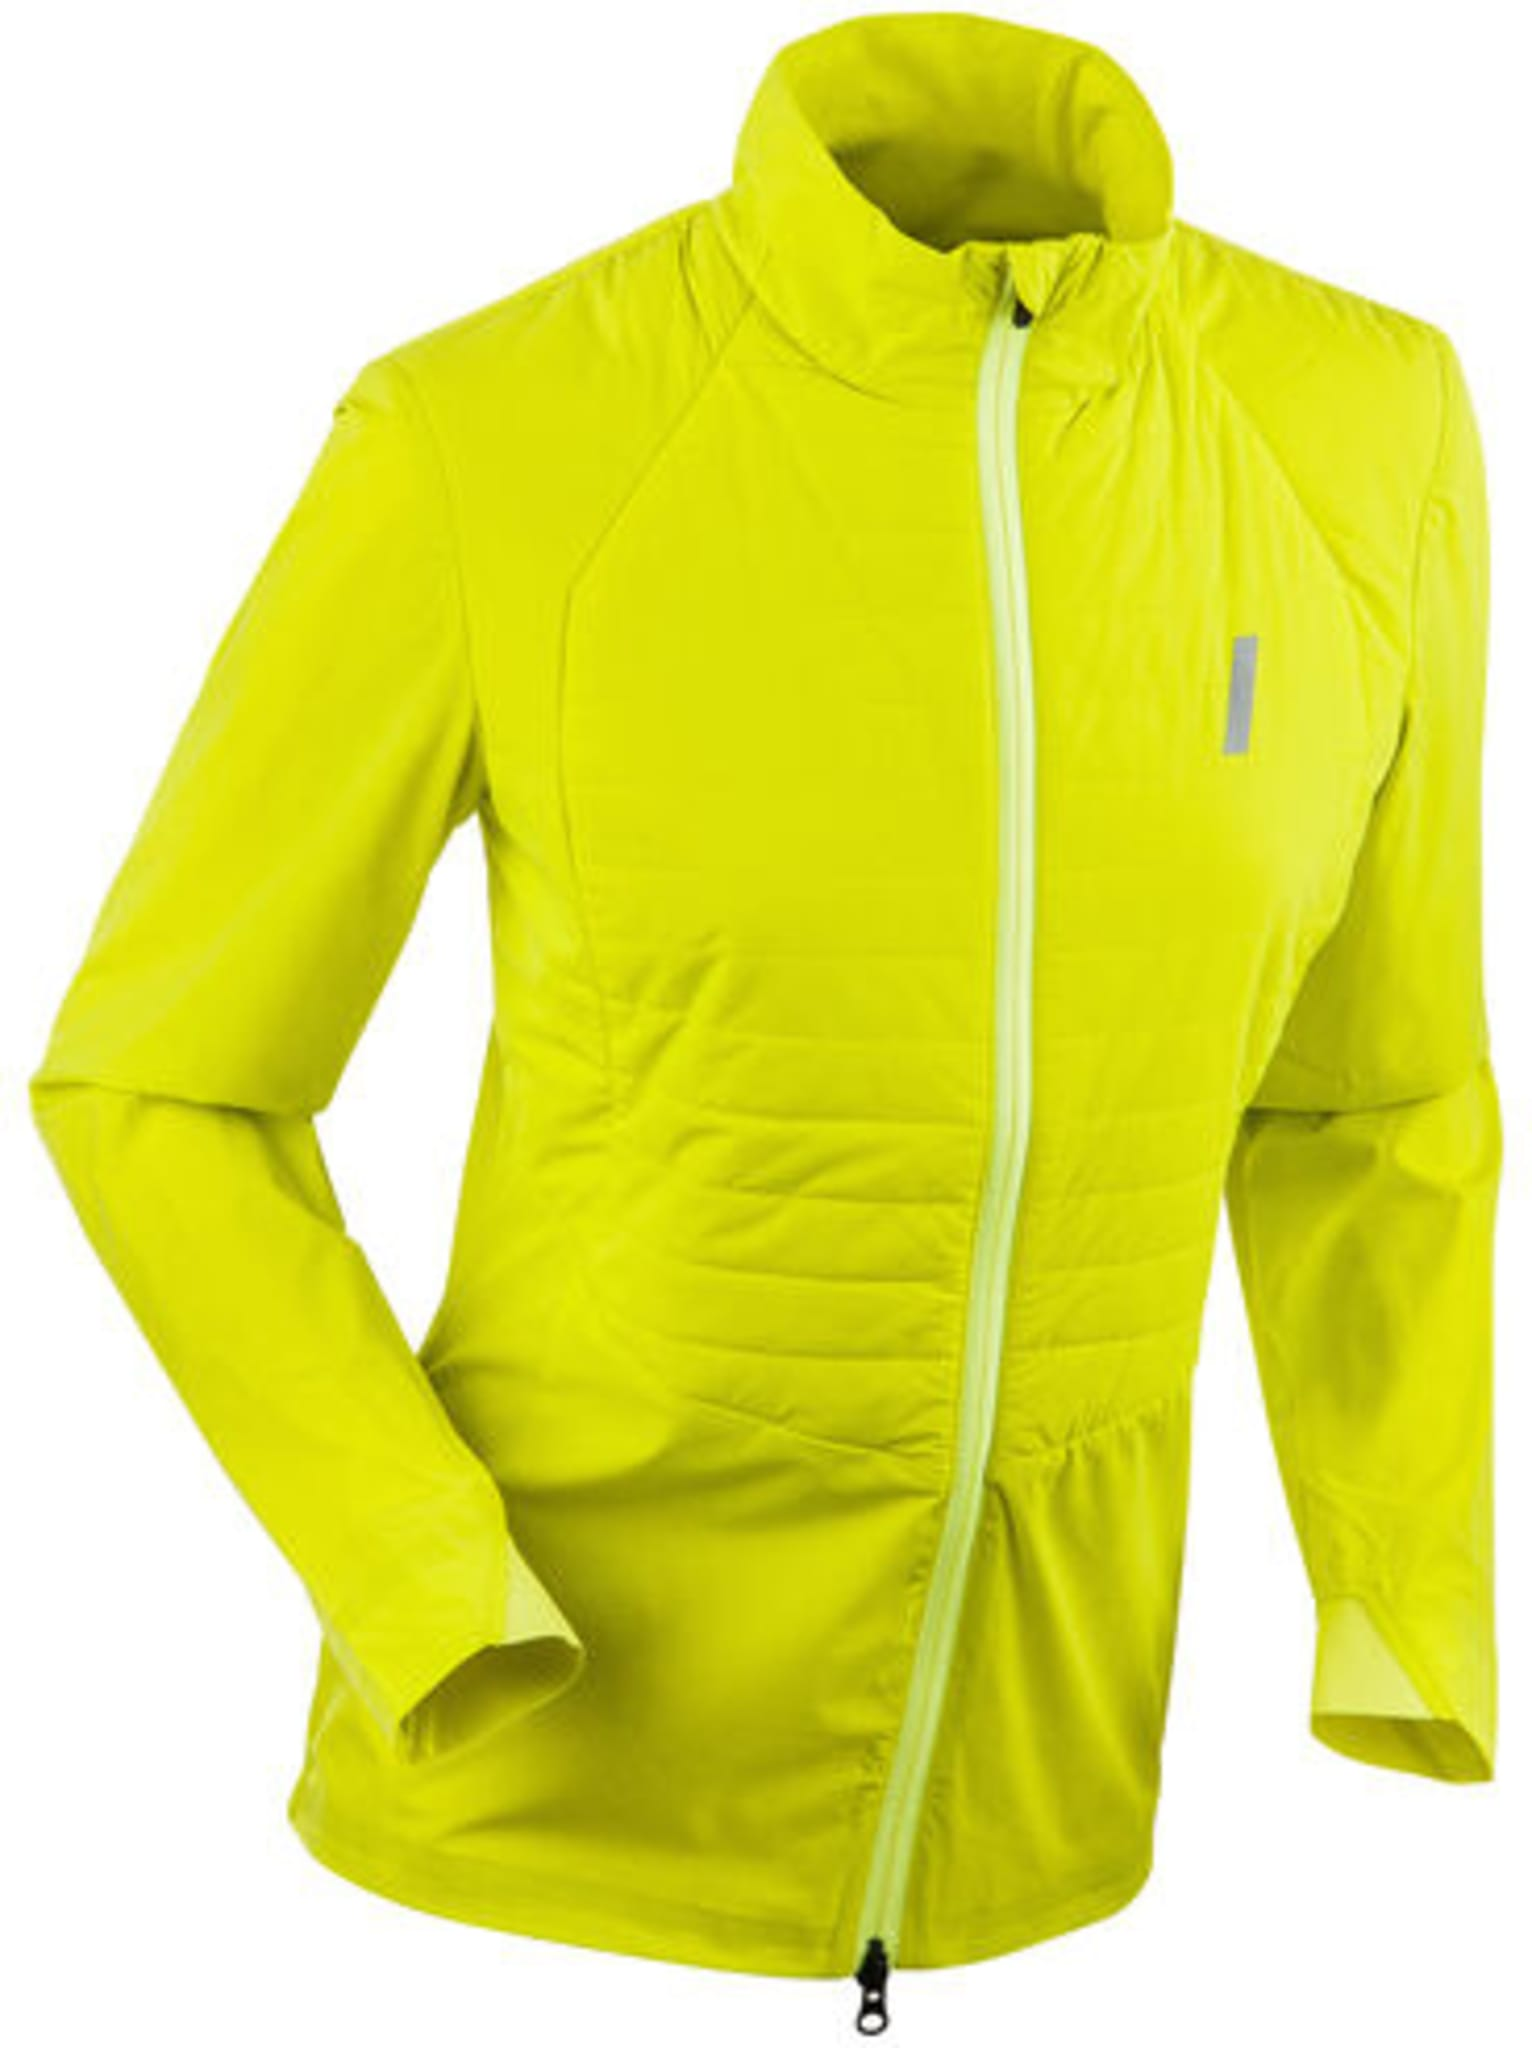 Winter Run Jacket til dame er den perfekte løpejakka ved kalde temperaturer